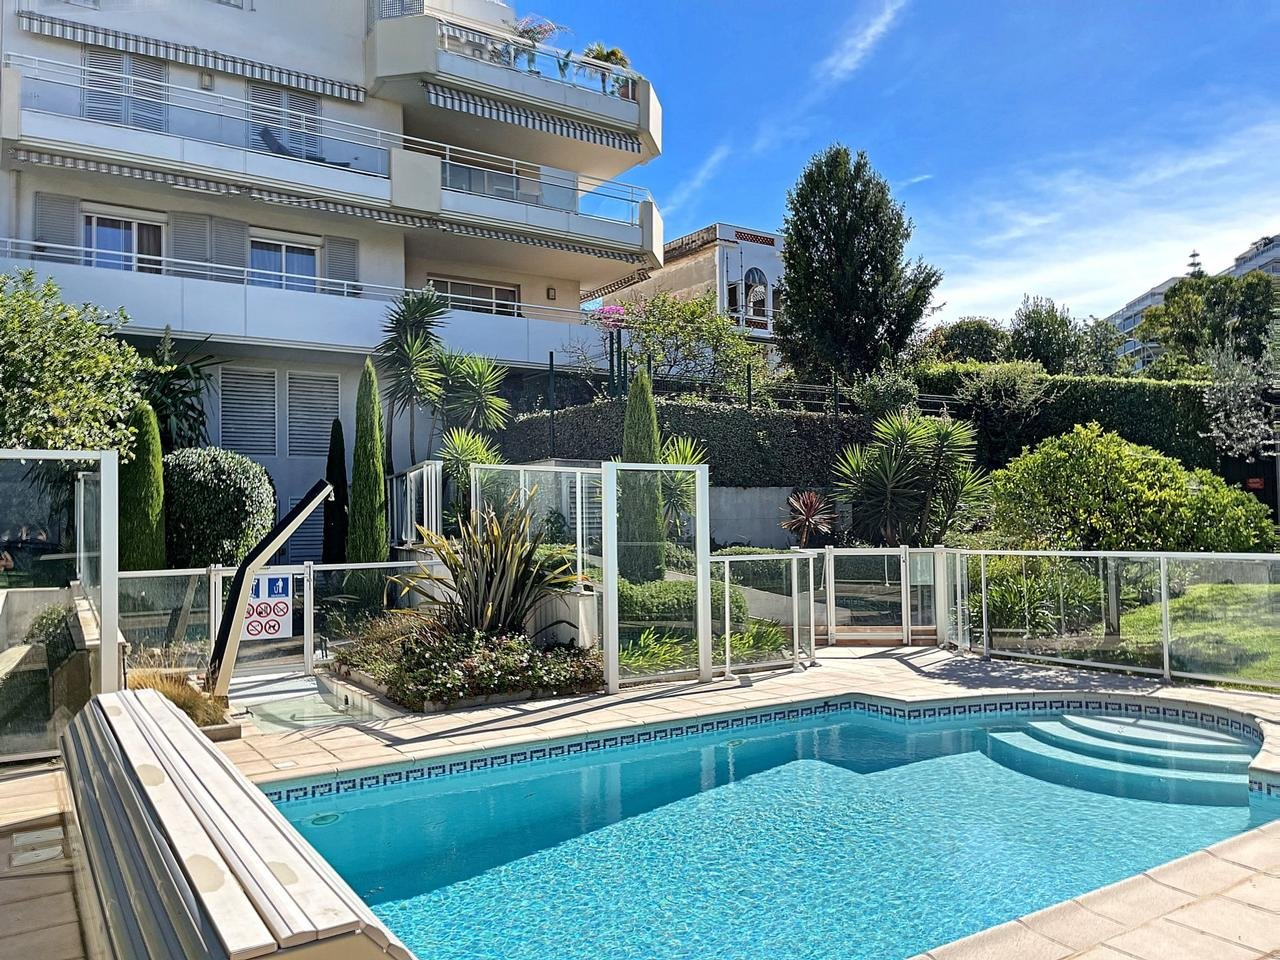 Appartement  2 Rooms 44m2  for sale   348000 €